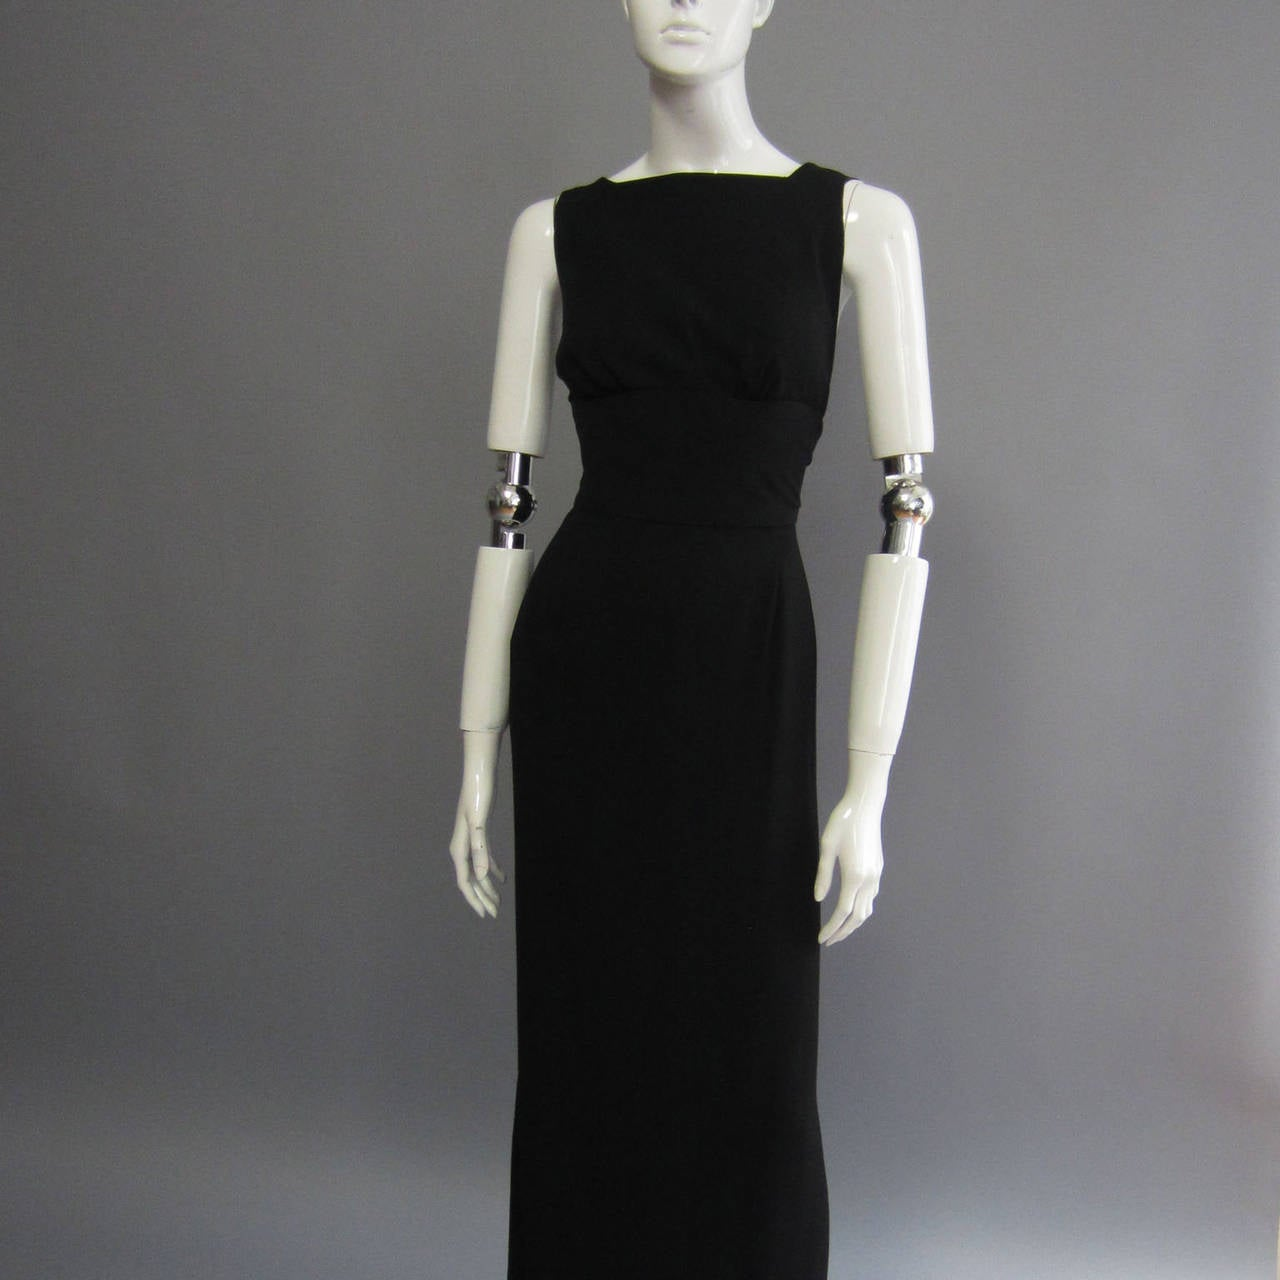 The epitome of chic, this NORMAN NORELL dress is reminiscent of the classic fashion icon Hudrey Hepburn. Its simplicity yet striking beauty makes it a timeless piece of fashion history. The black silk crepe creates a wide band at the front waist.